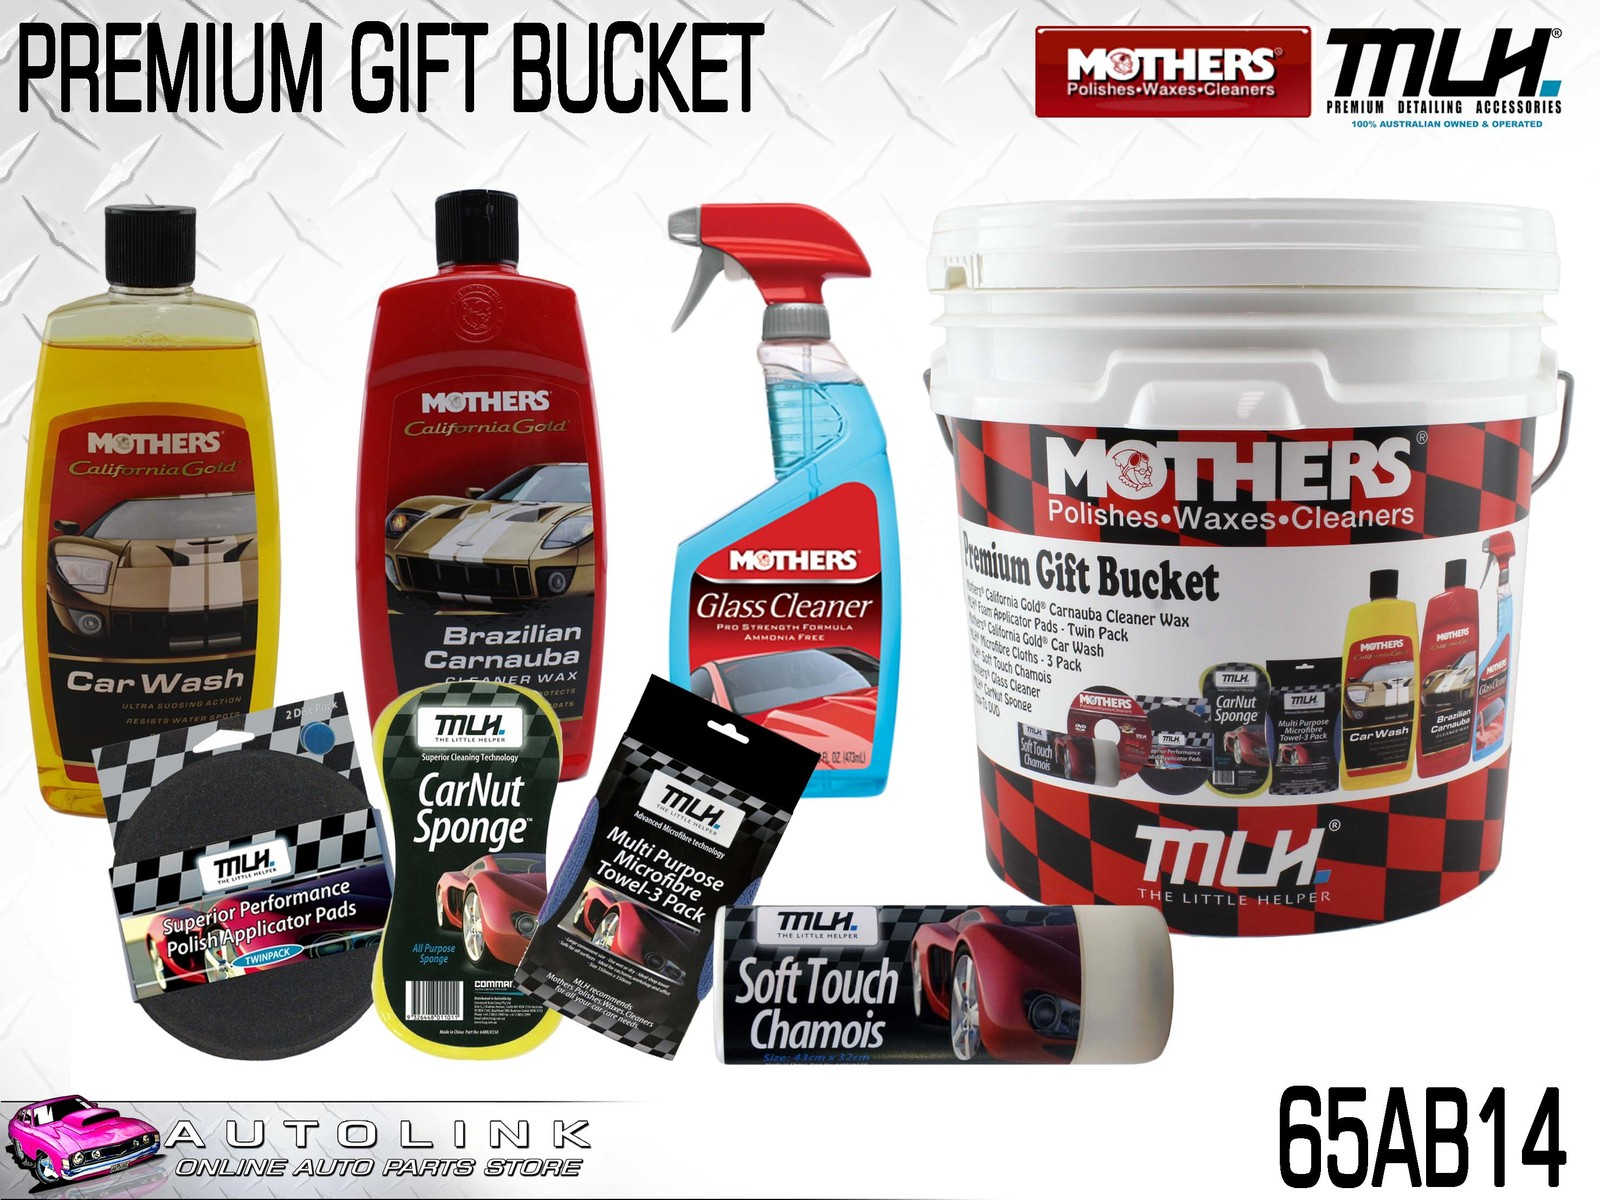 Mothers Car Care >> Mothers Mlh Car Care Gift Bucket California Gold Wash